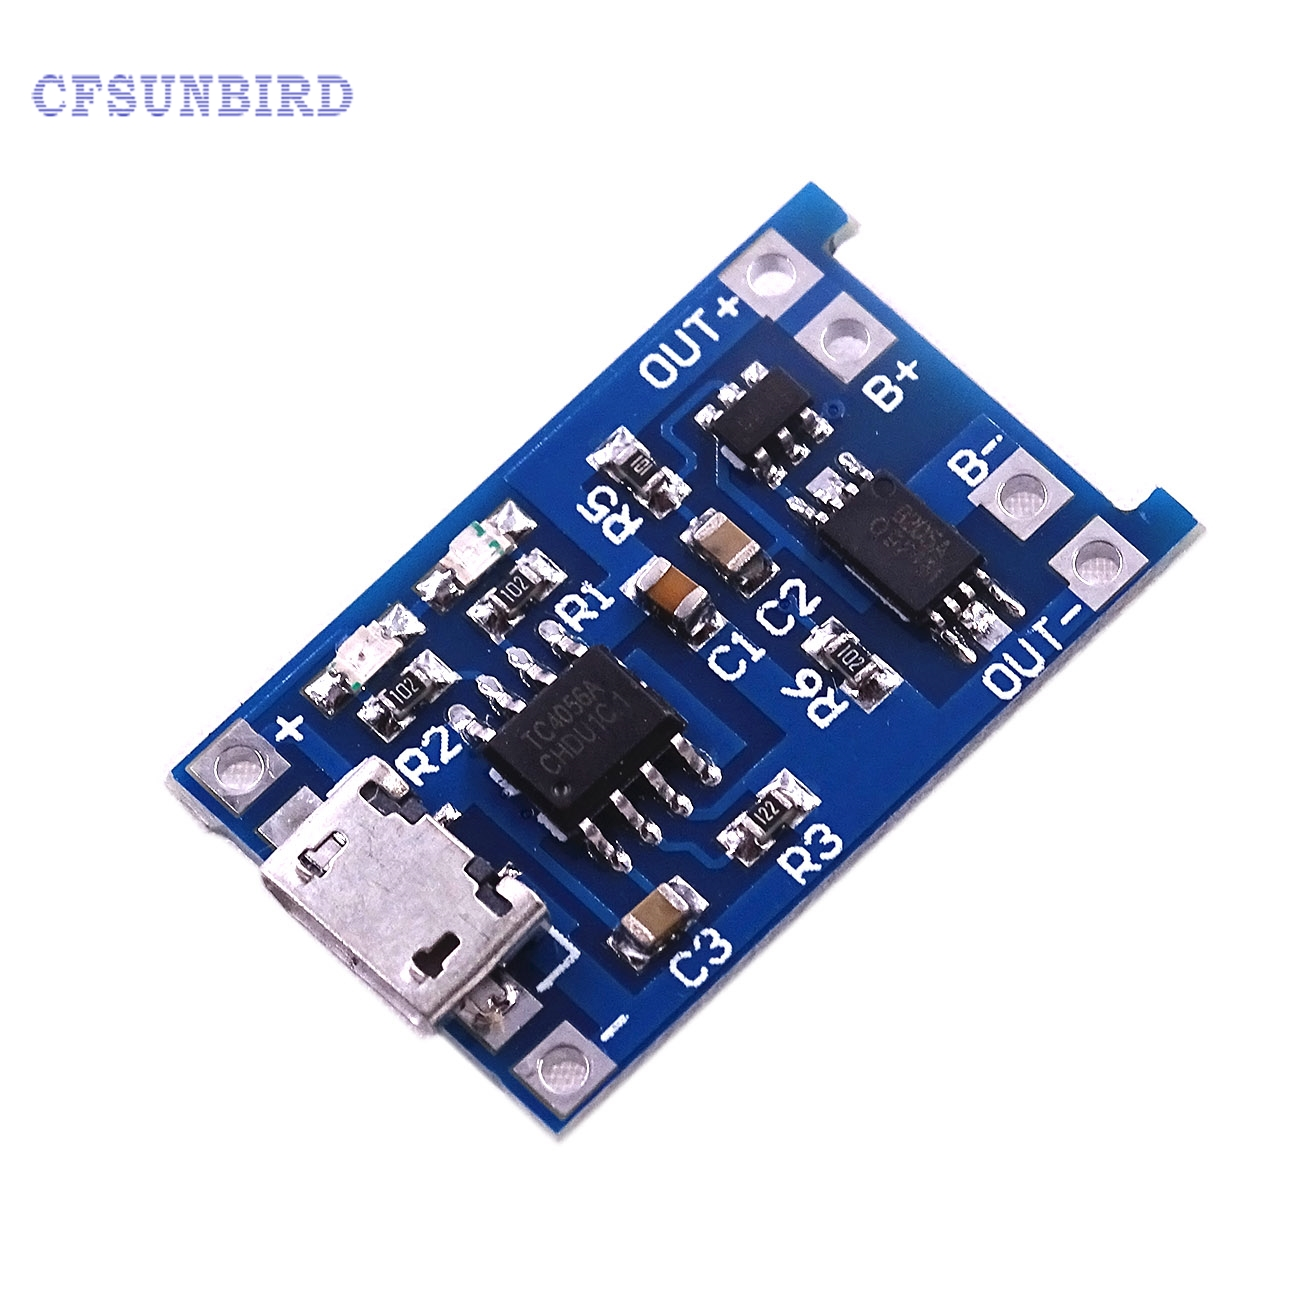 1000pcs Micro USB 5V 1A 18650 TP4056 Lithium Battery Charger Module Charging Board With Protection Dual Functions 12a 3s 18650 li ion lithium battery cell charger protection board pcb lithium polymer battery charging module